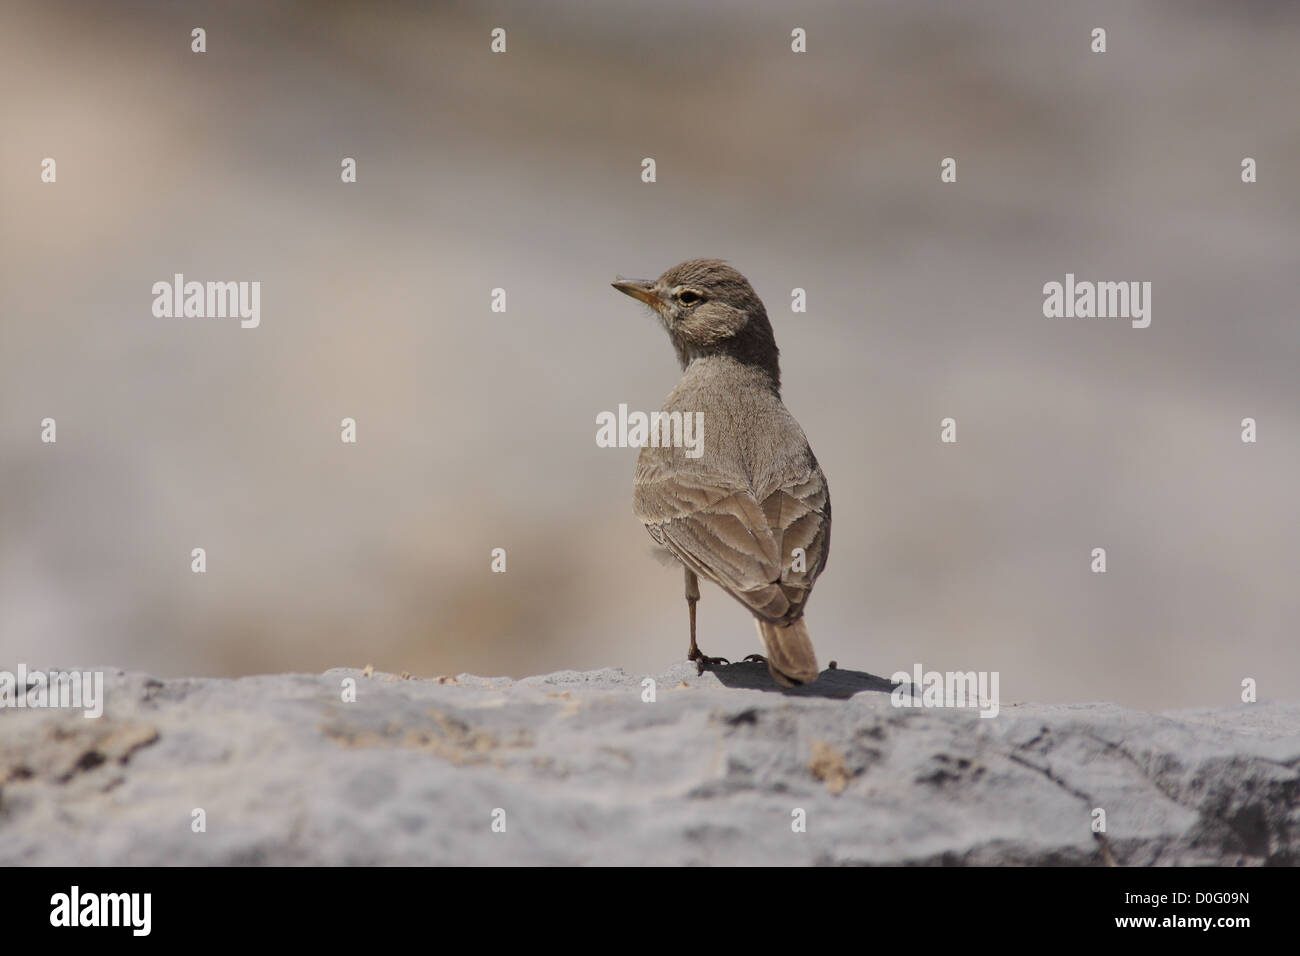 Desert lark perching on stone - Stock Image